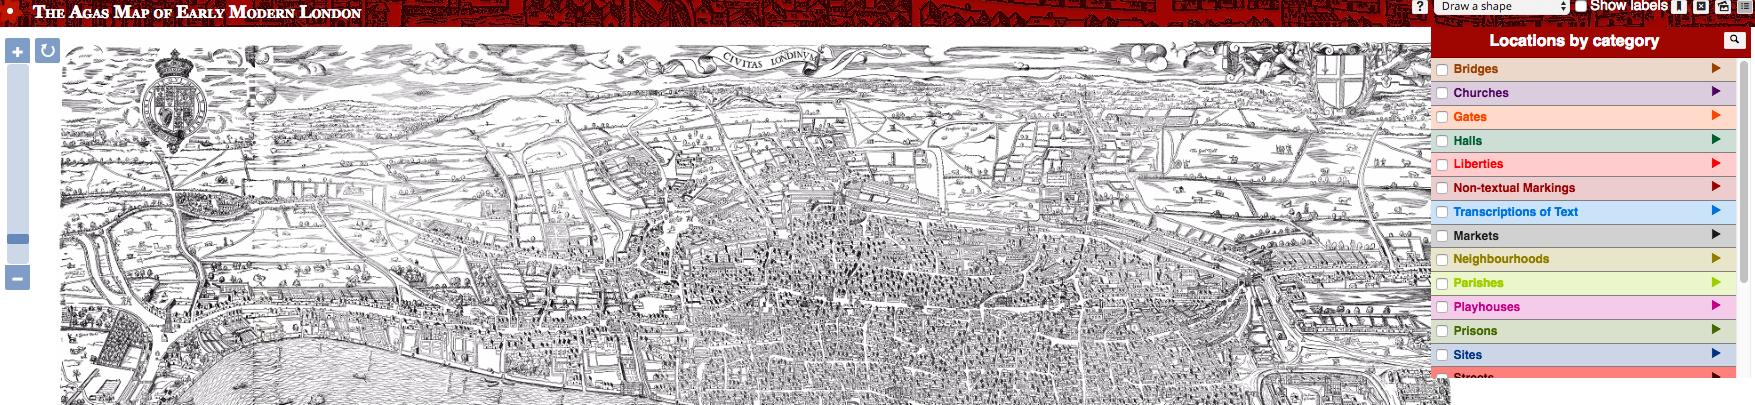 open-map-of-early-modern-london